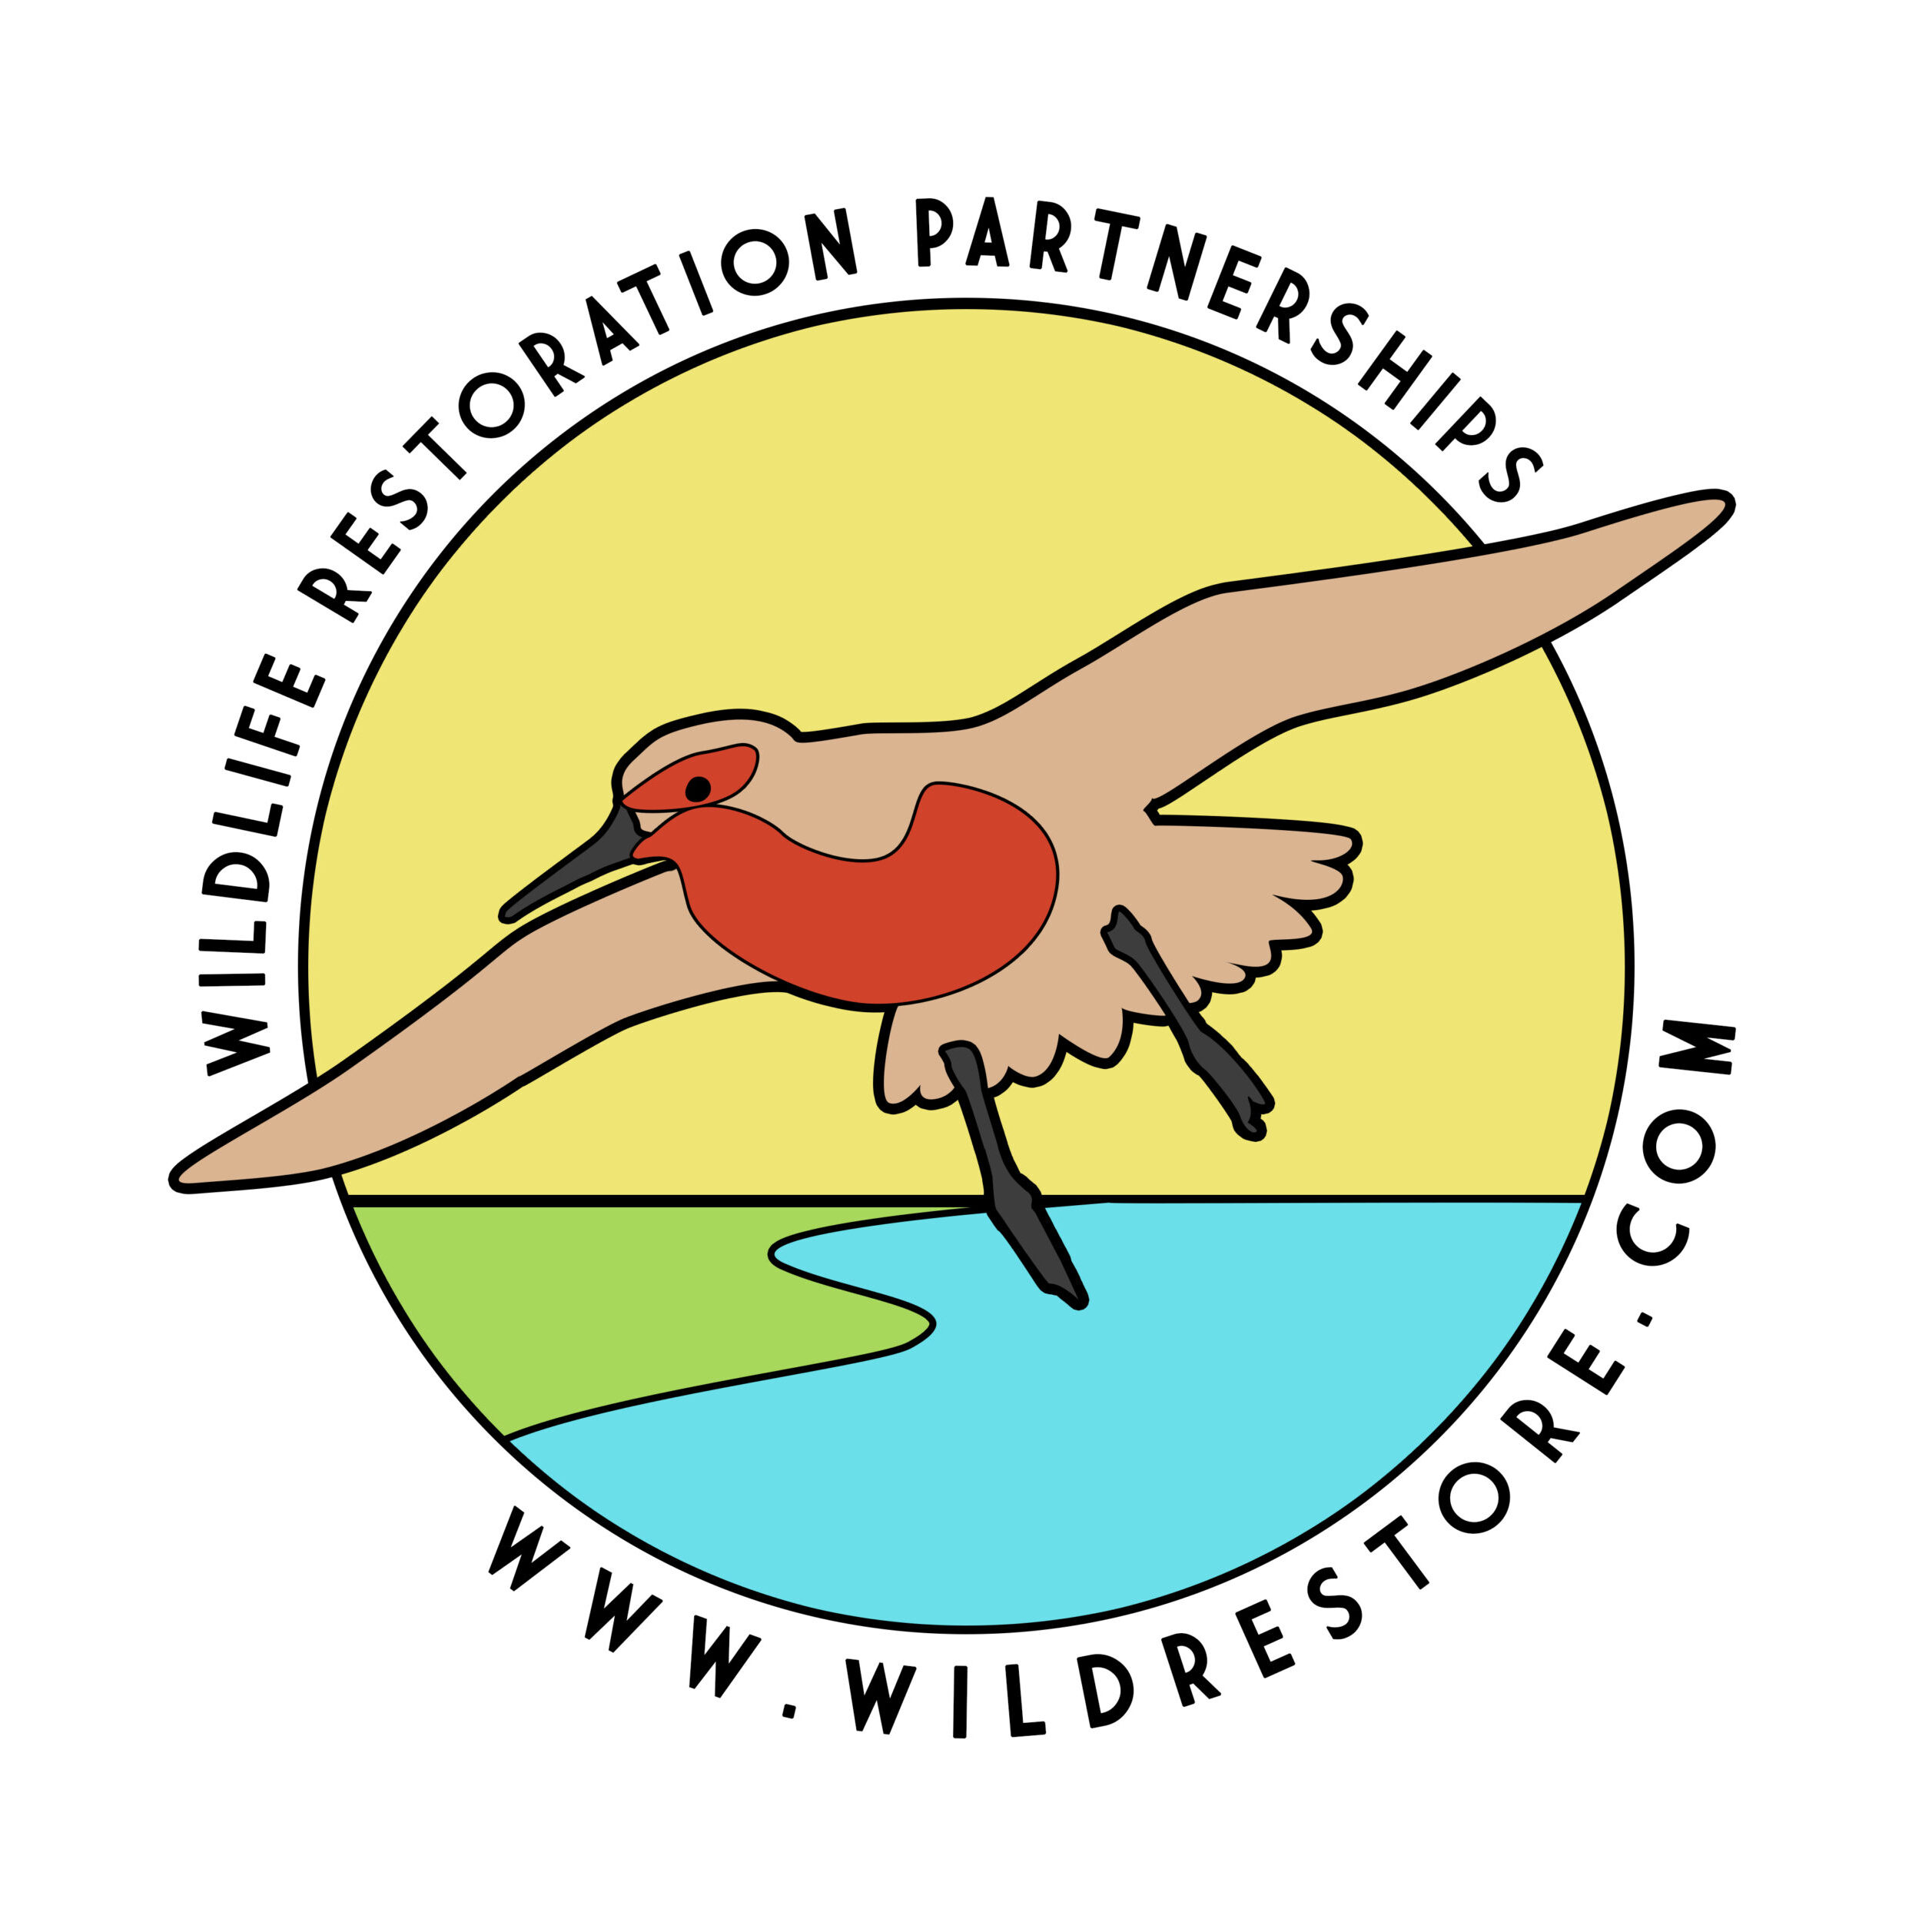 Wildlife Restoration Partnerships